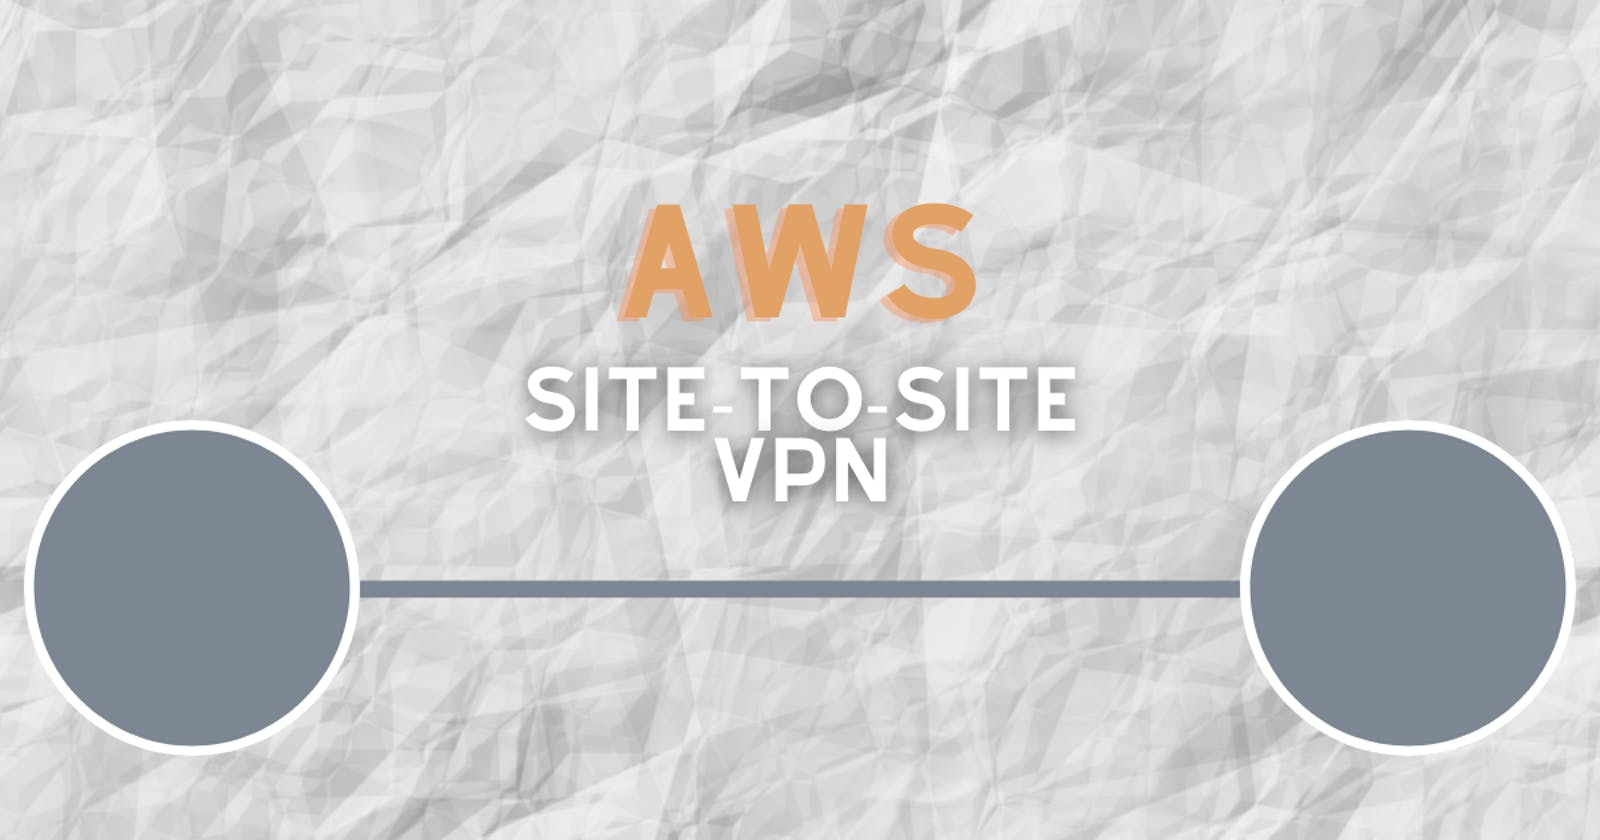 How I Built an AWS Dynamic, BGP Based, Highly-Available Site-to-Site VPN